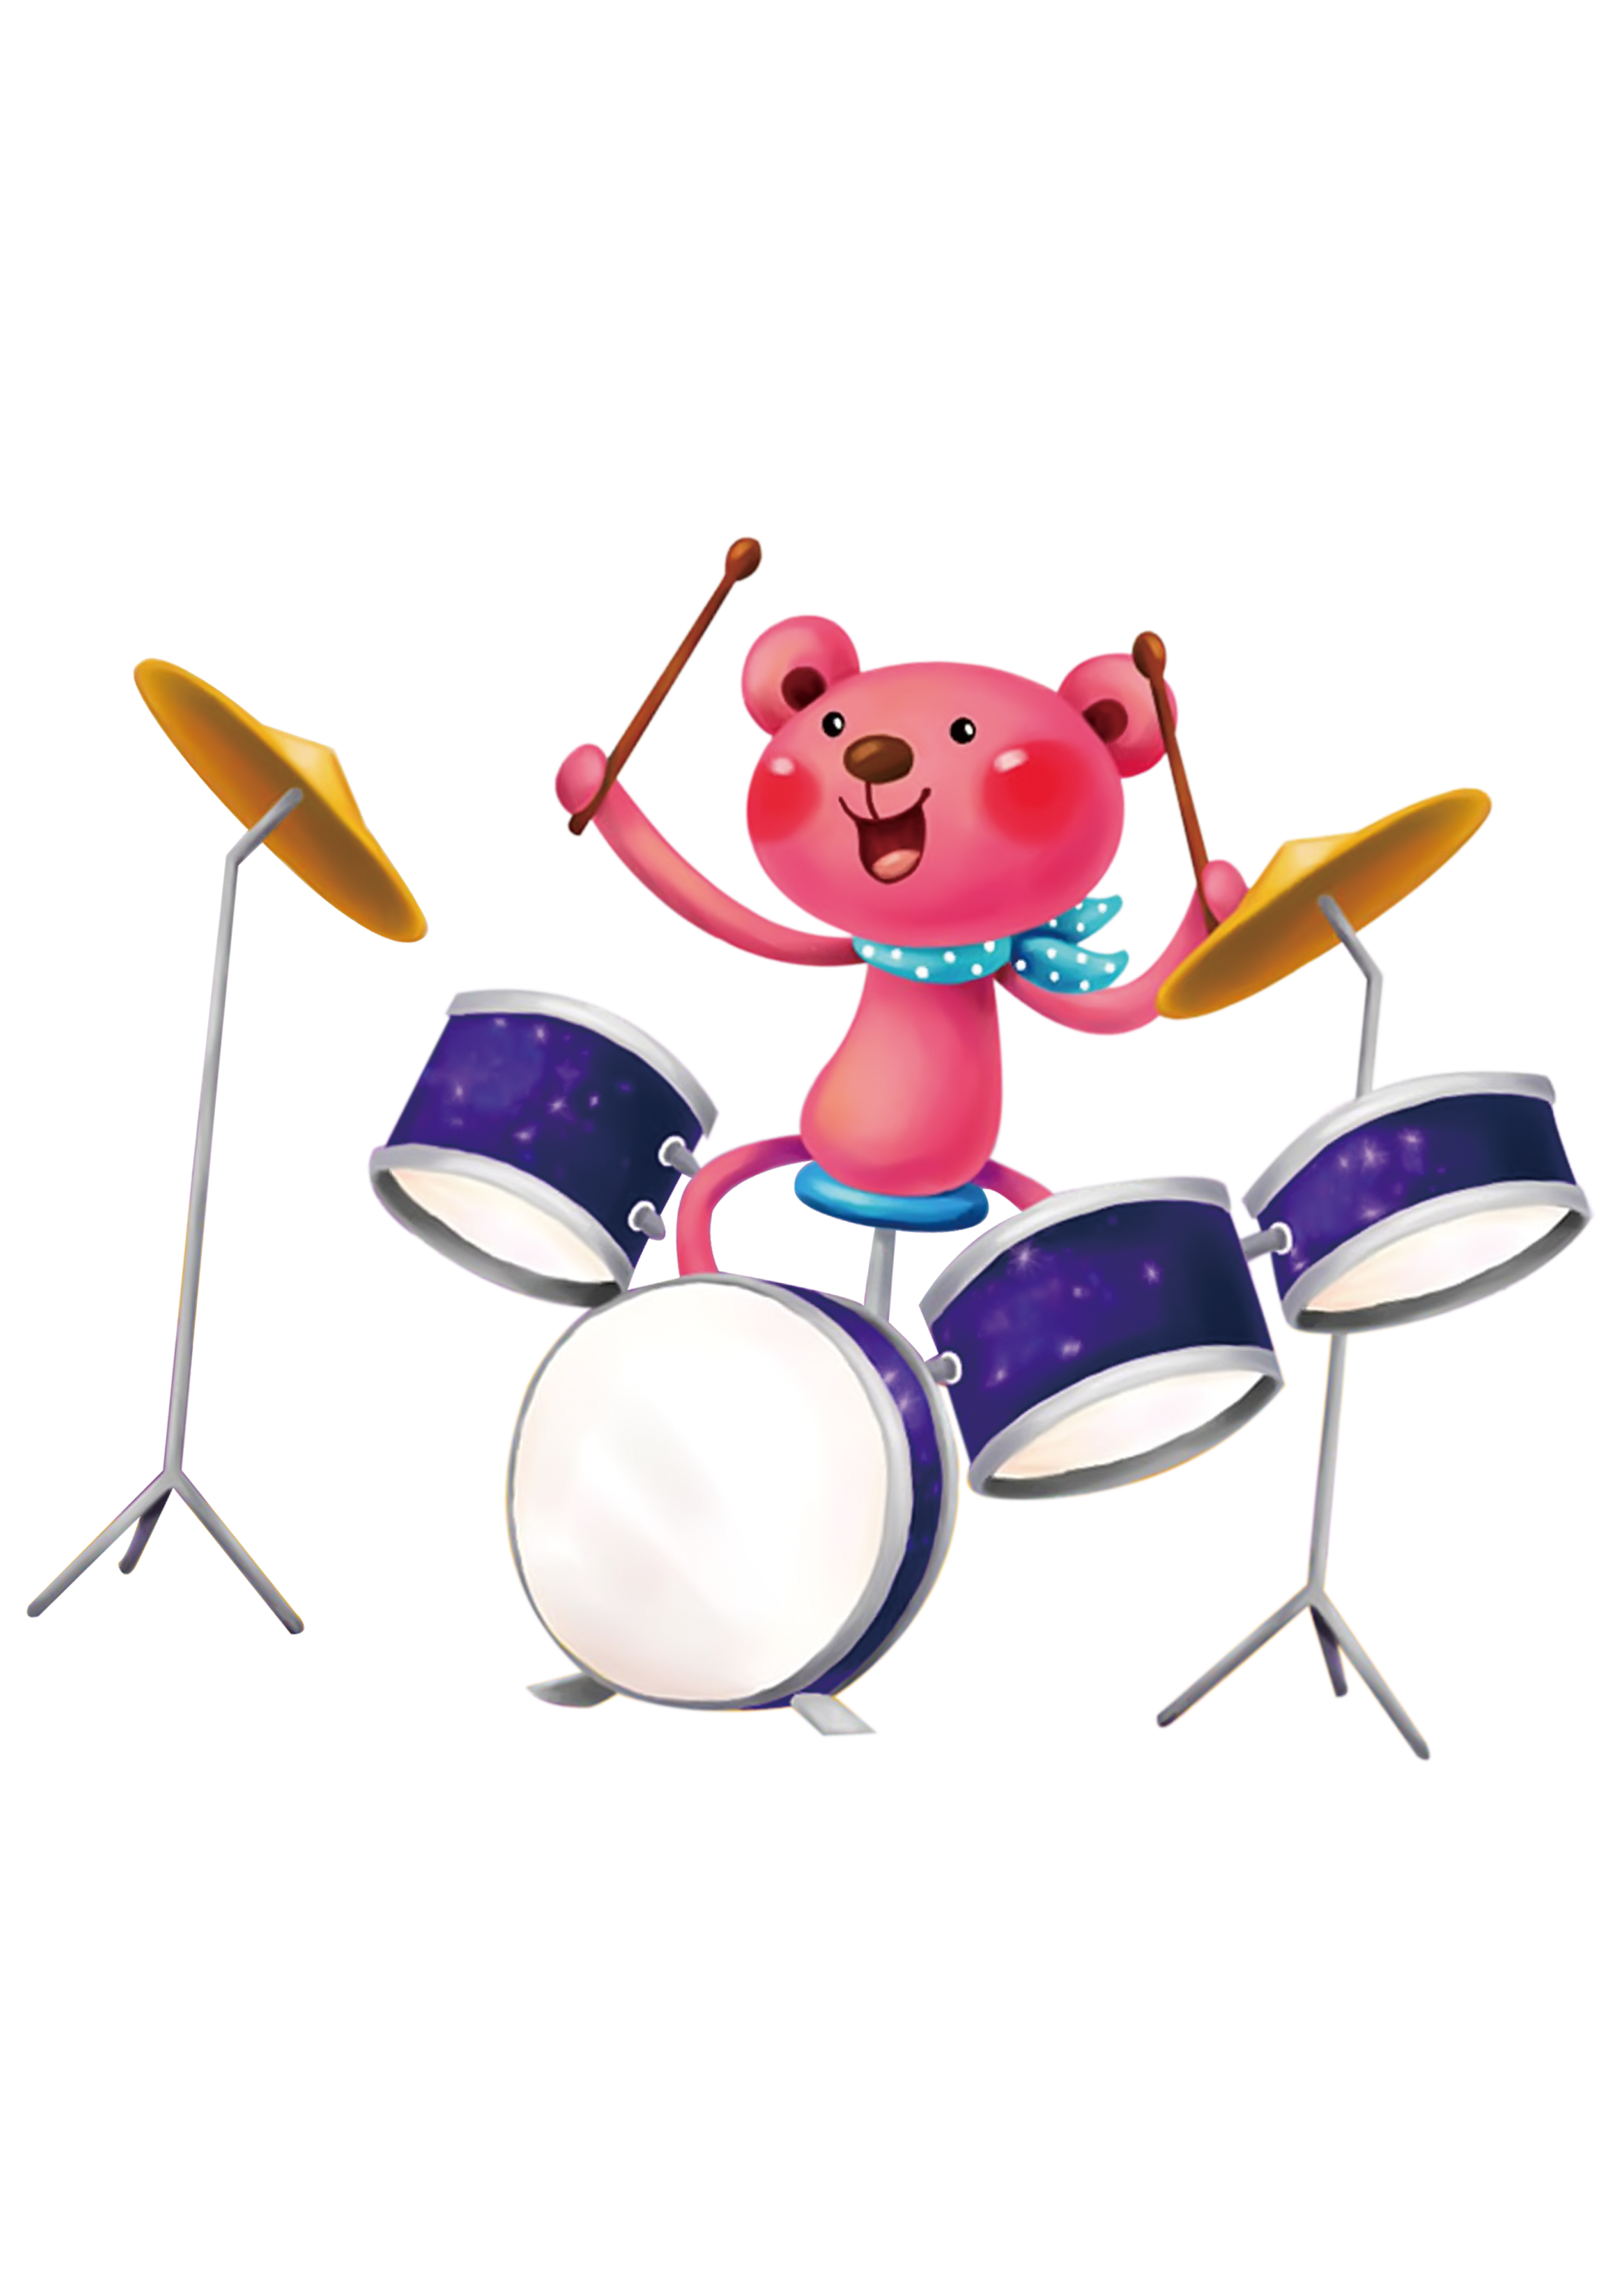 Musical instrument instruments cartoon. Drums clipart drum indian